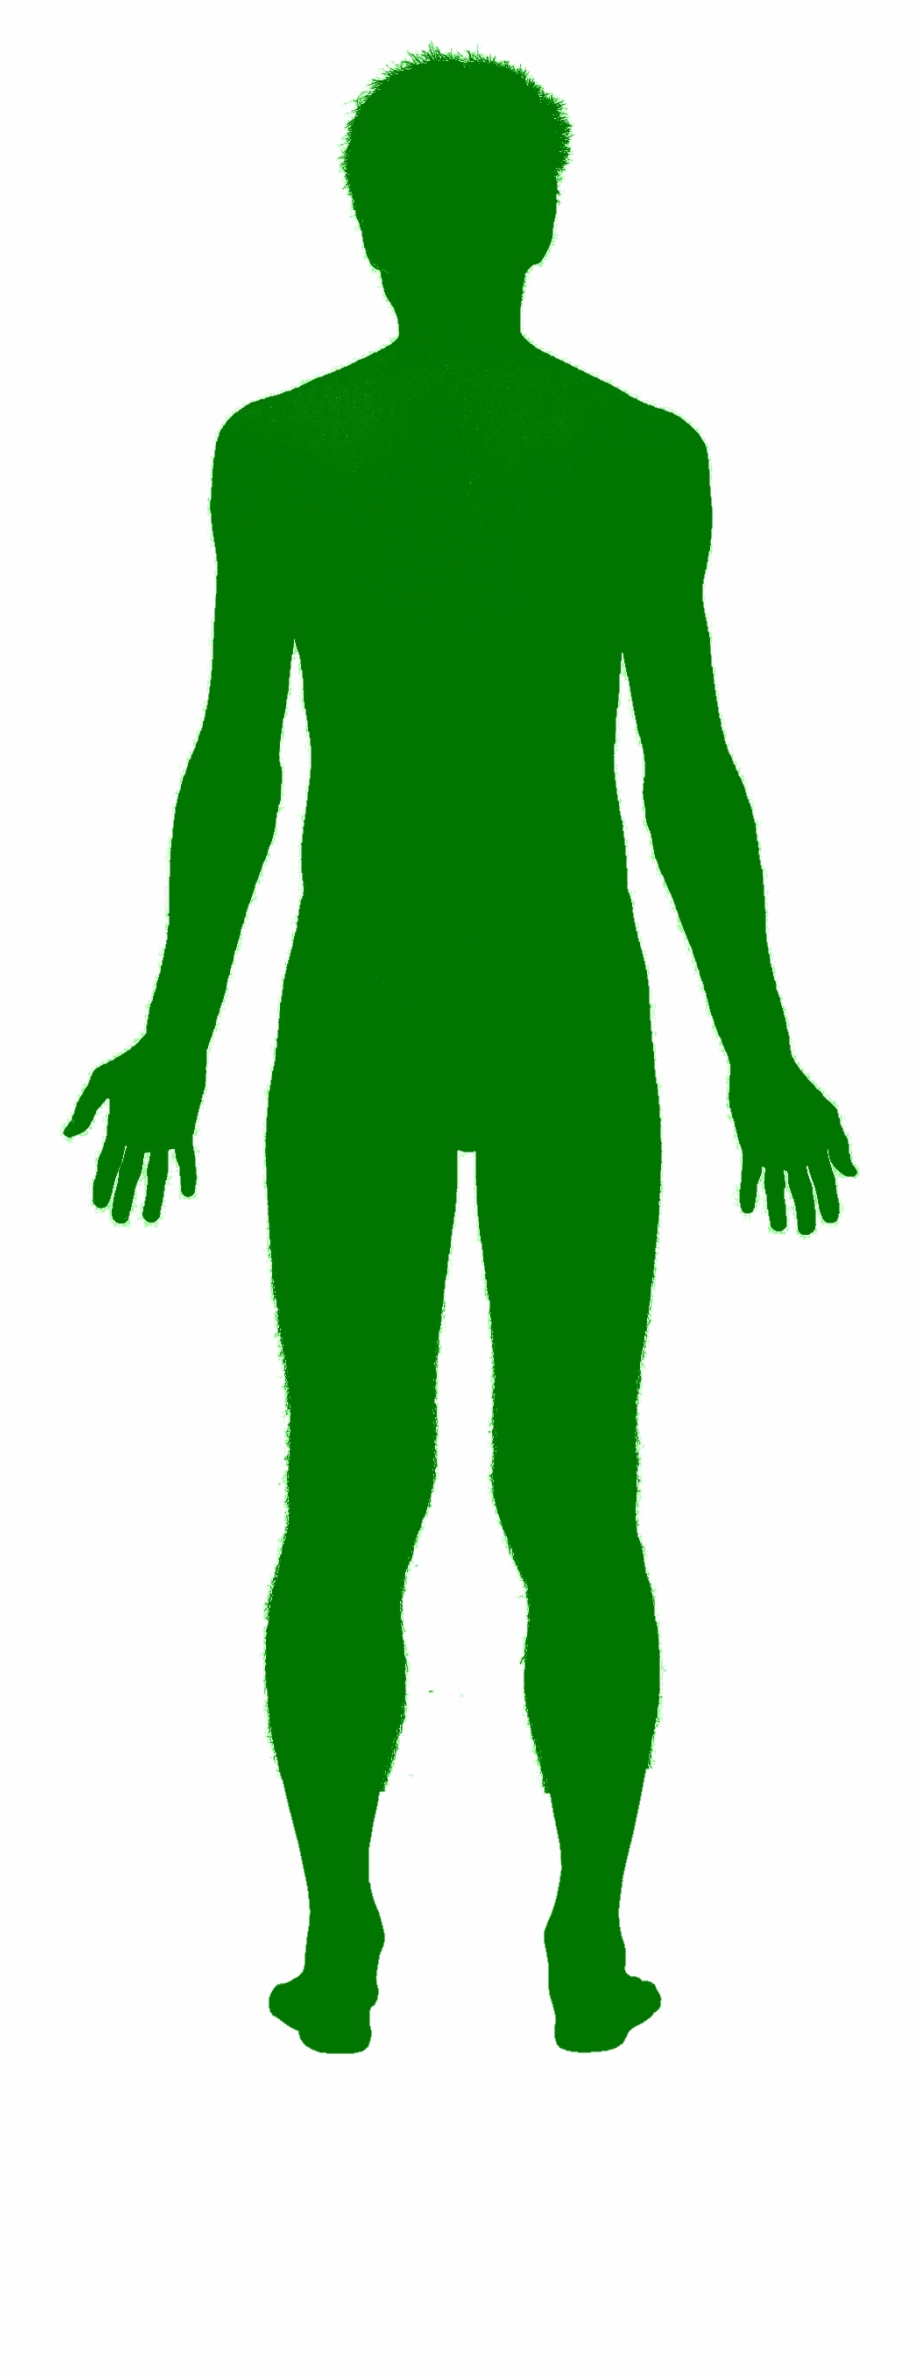 Green Man Shadow Human Body Outline Png.